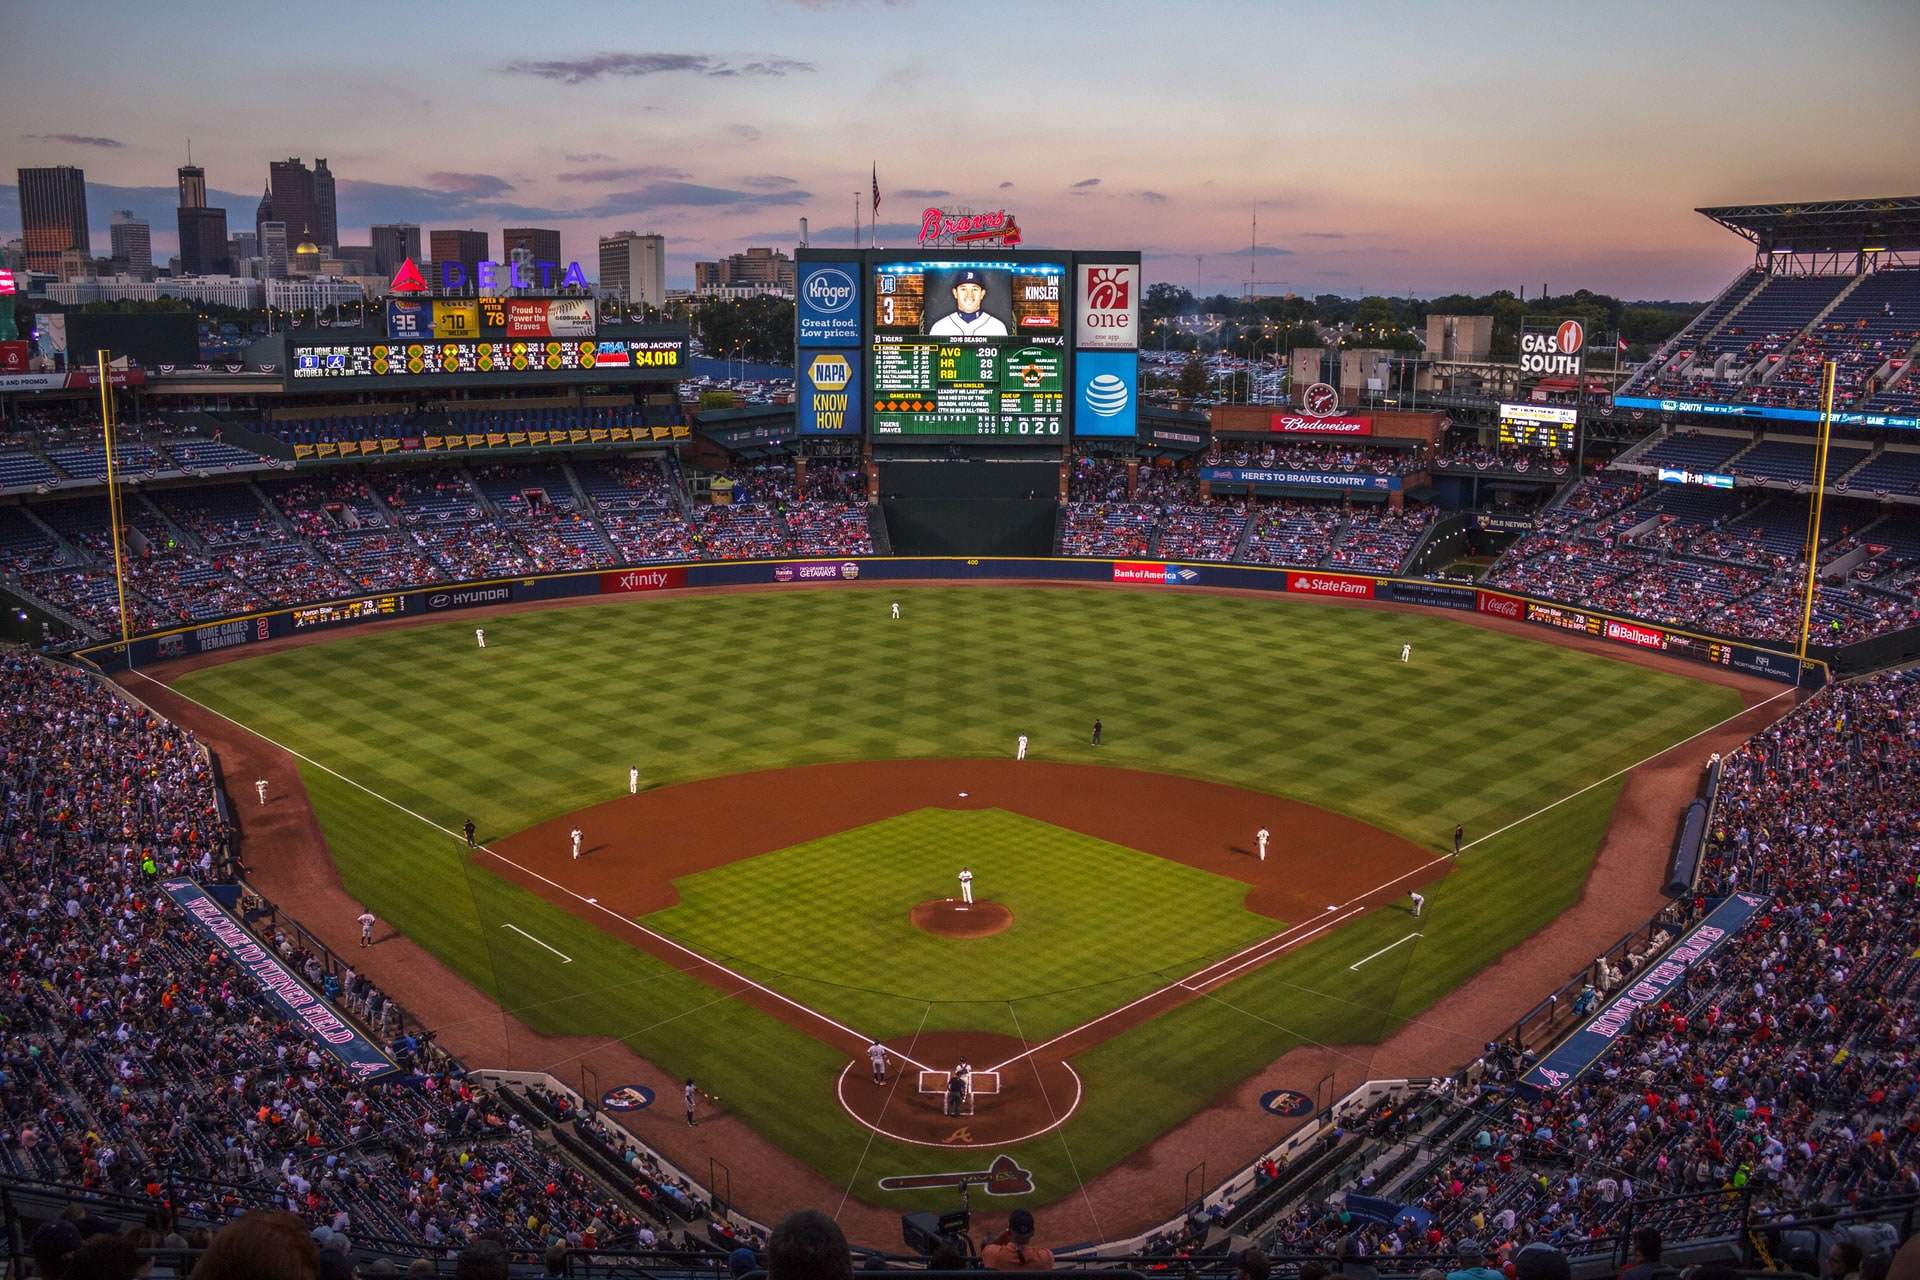 A view of the entire field at an Atlanta Braves baseball game at Truist Park.